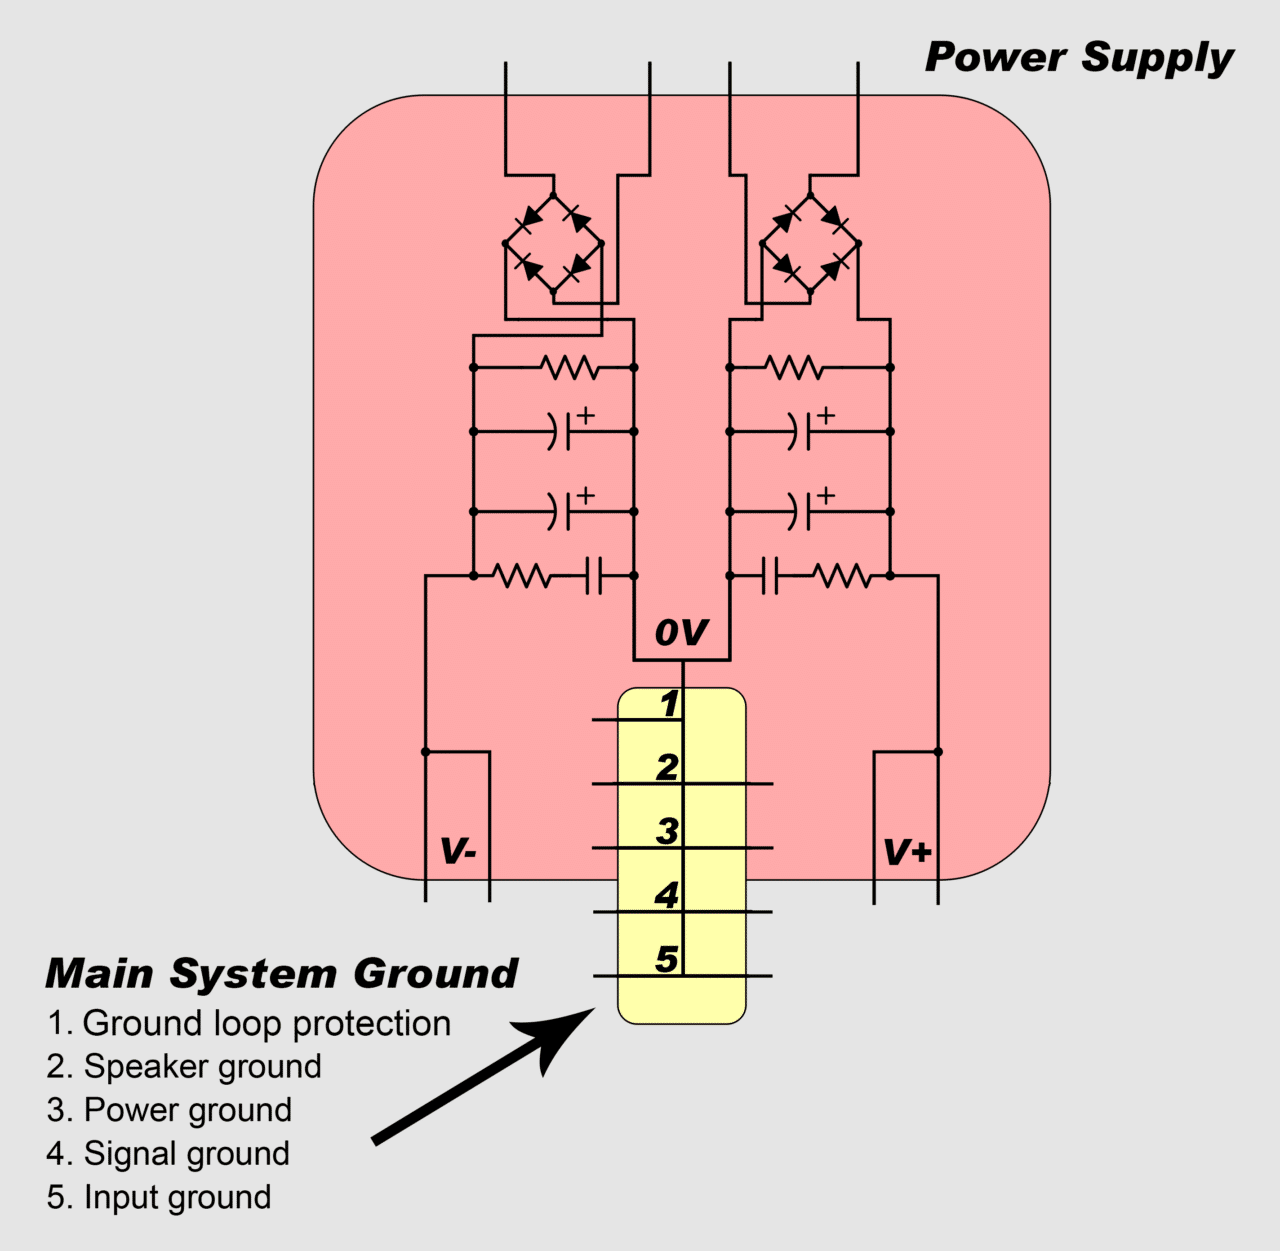 How To Design And Build An Amplifier With The Tda2050 Circuit Basics Wiring Diagram Provide Instruction So You Can Trace Ground Networks Are Connected Main System In A Particular Order That High Currents Only Flow Through Low Current Grounds For Very